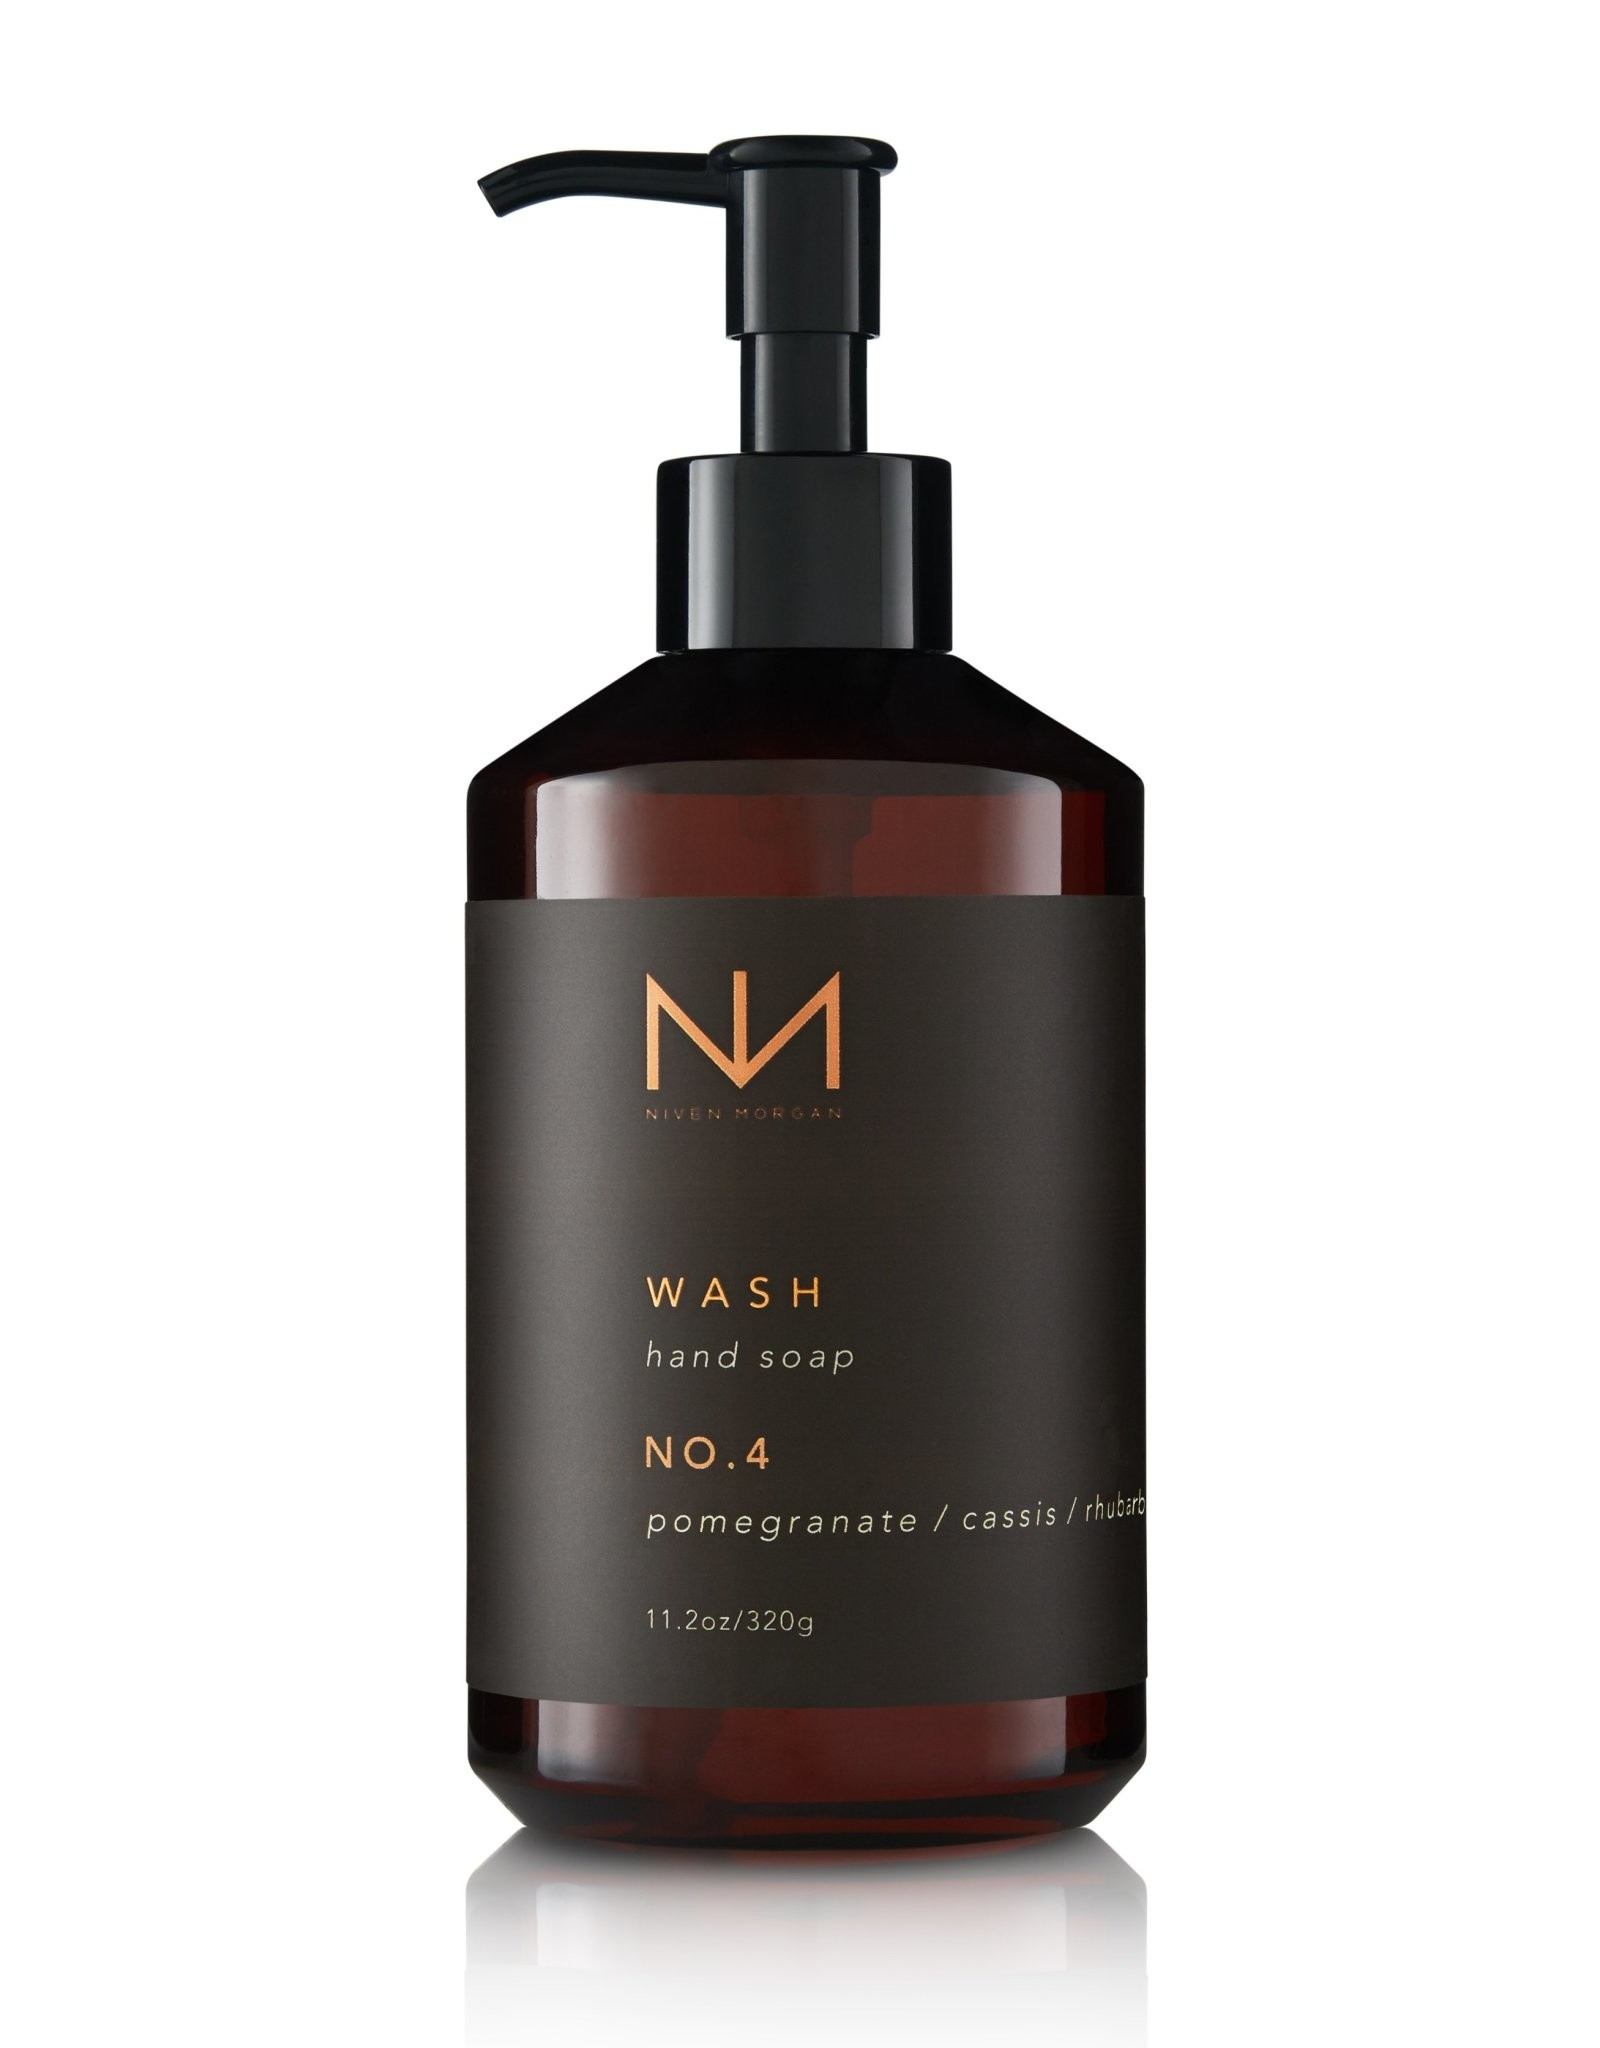 NM Hydrate Hand Soap No. 4